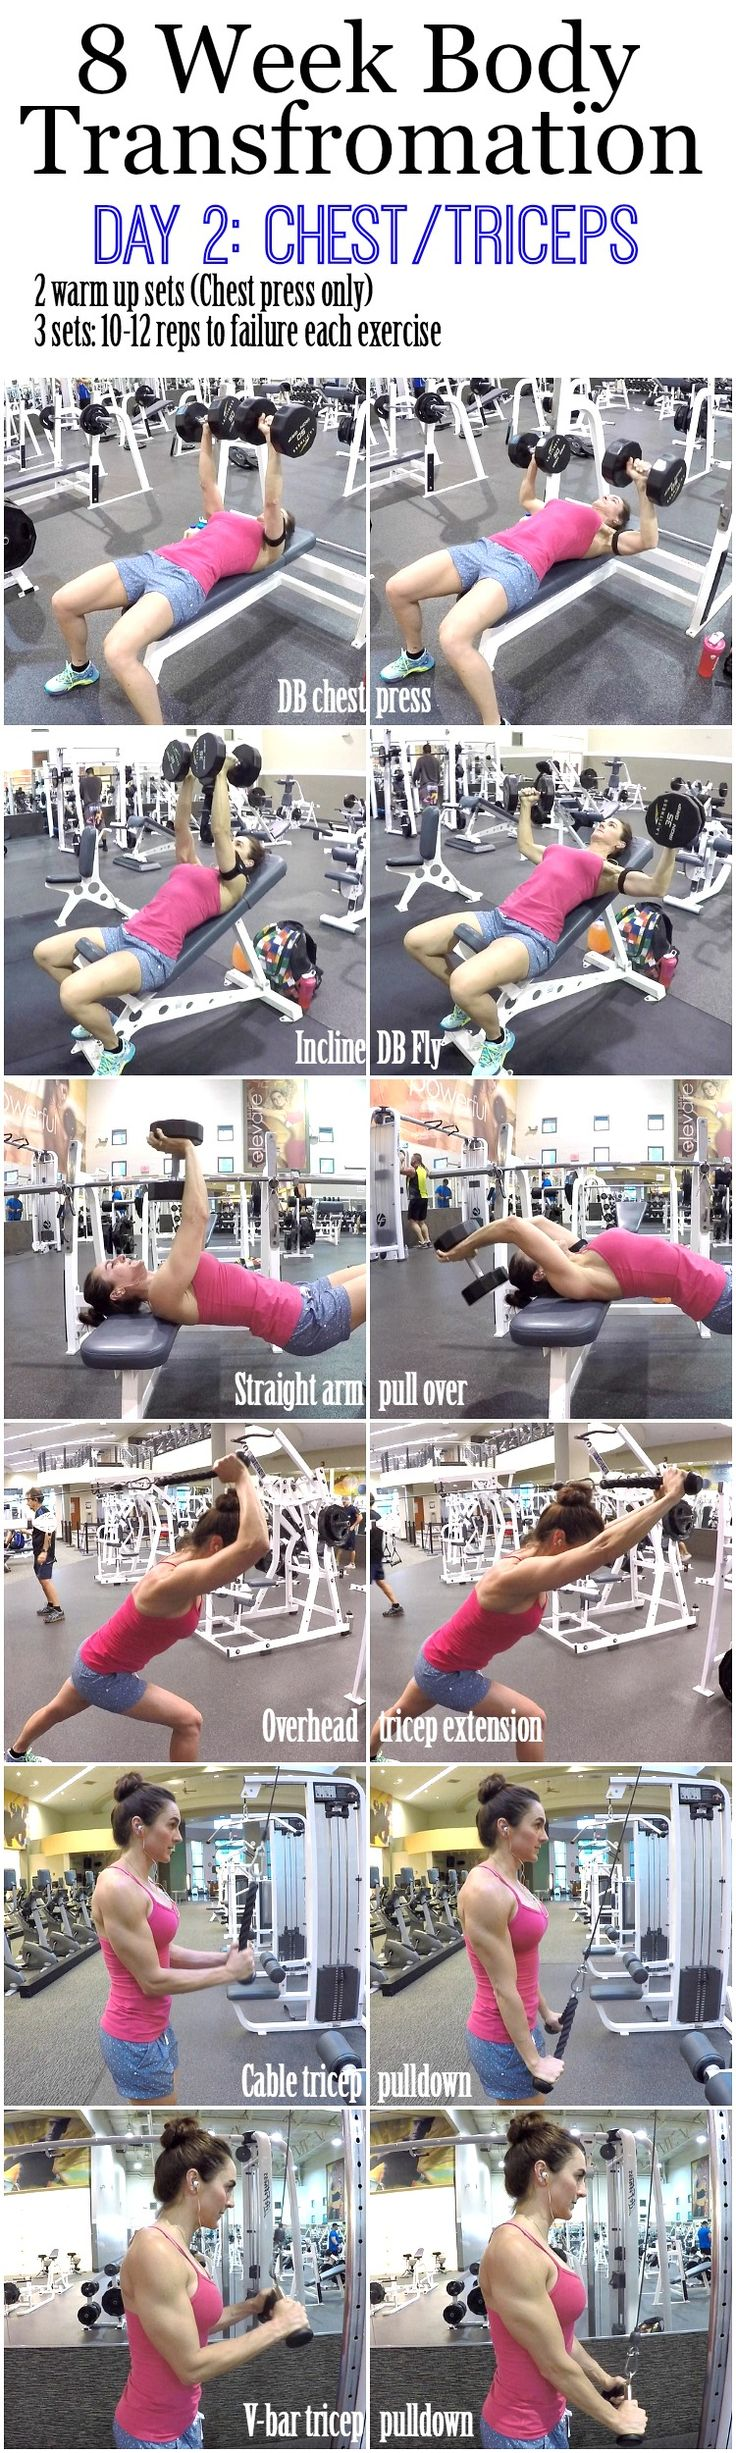 Build bigger biceps with this one trick Welcome to Day 2!! I hope Day 1 went well and you really pushed your legs to fatigue. Today we are going to be working our Chest and Triceps. So before I begin I need to say that ladies, it is very